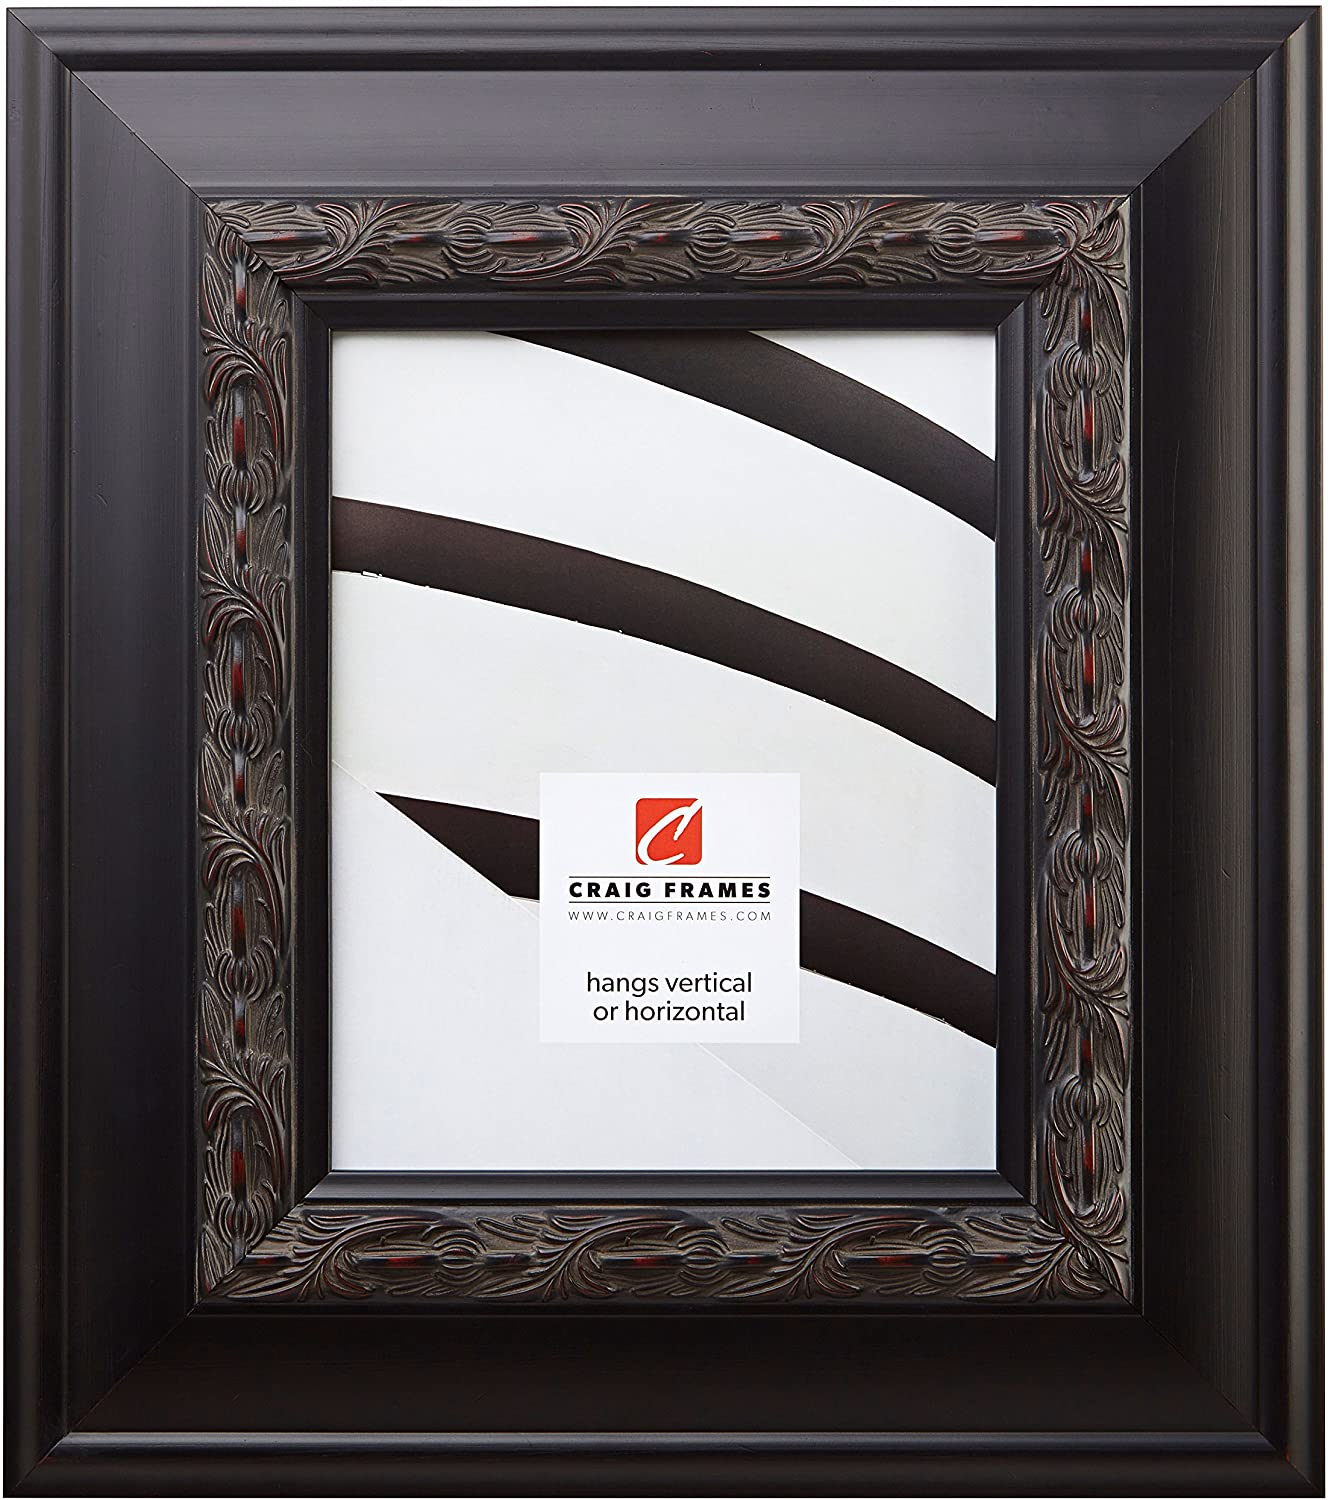 Craig Frames 9204 20 by 30-Inch Ornate Picture New products world's highest quality popular 3. Frame Max 80% OFF Finish